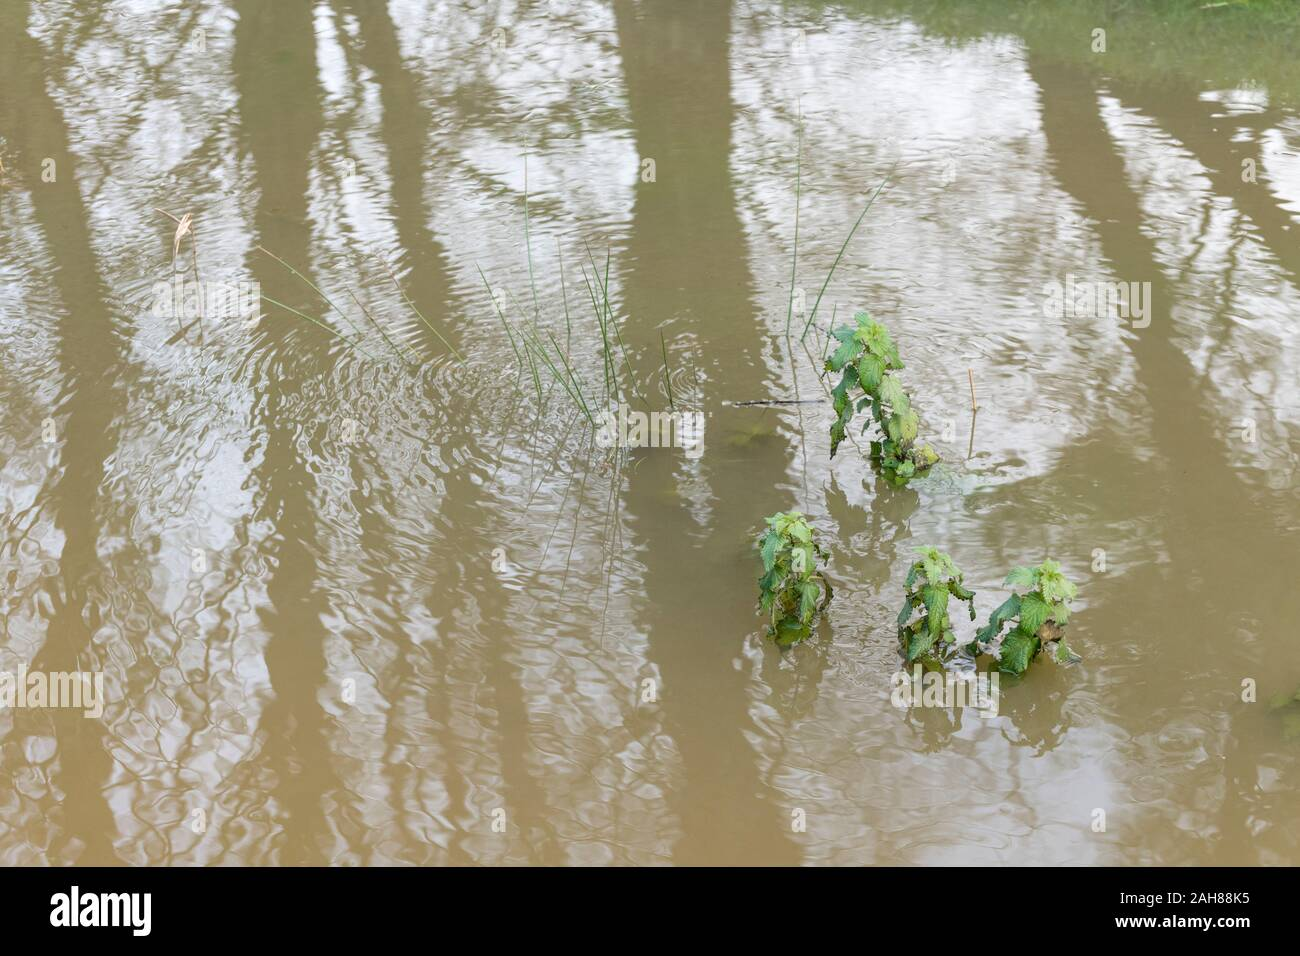 Submerged Nettles / Urtica dioica in flooded drainage channel after heavy rain. Concept flood waters, winter floods, submerged, water reflections. Stock Photo